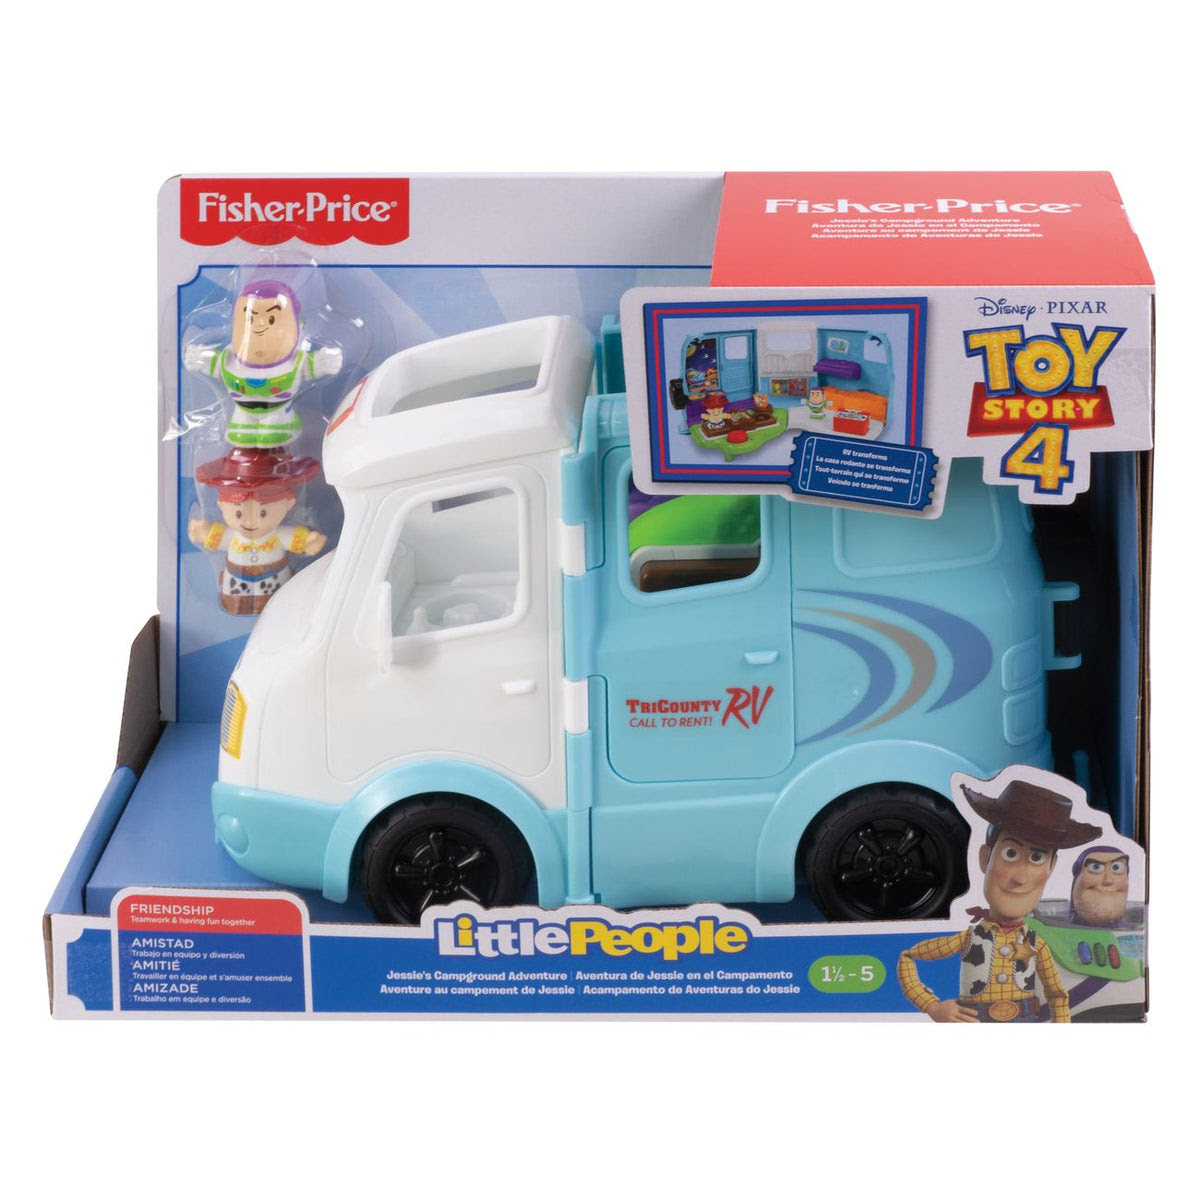 Download Fisher-Price Little People Toy Story 4 Rv | Toyworld Australia